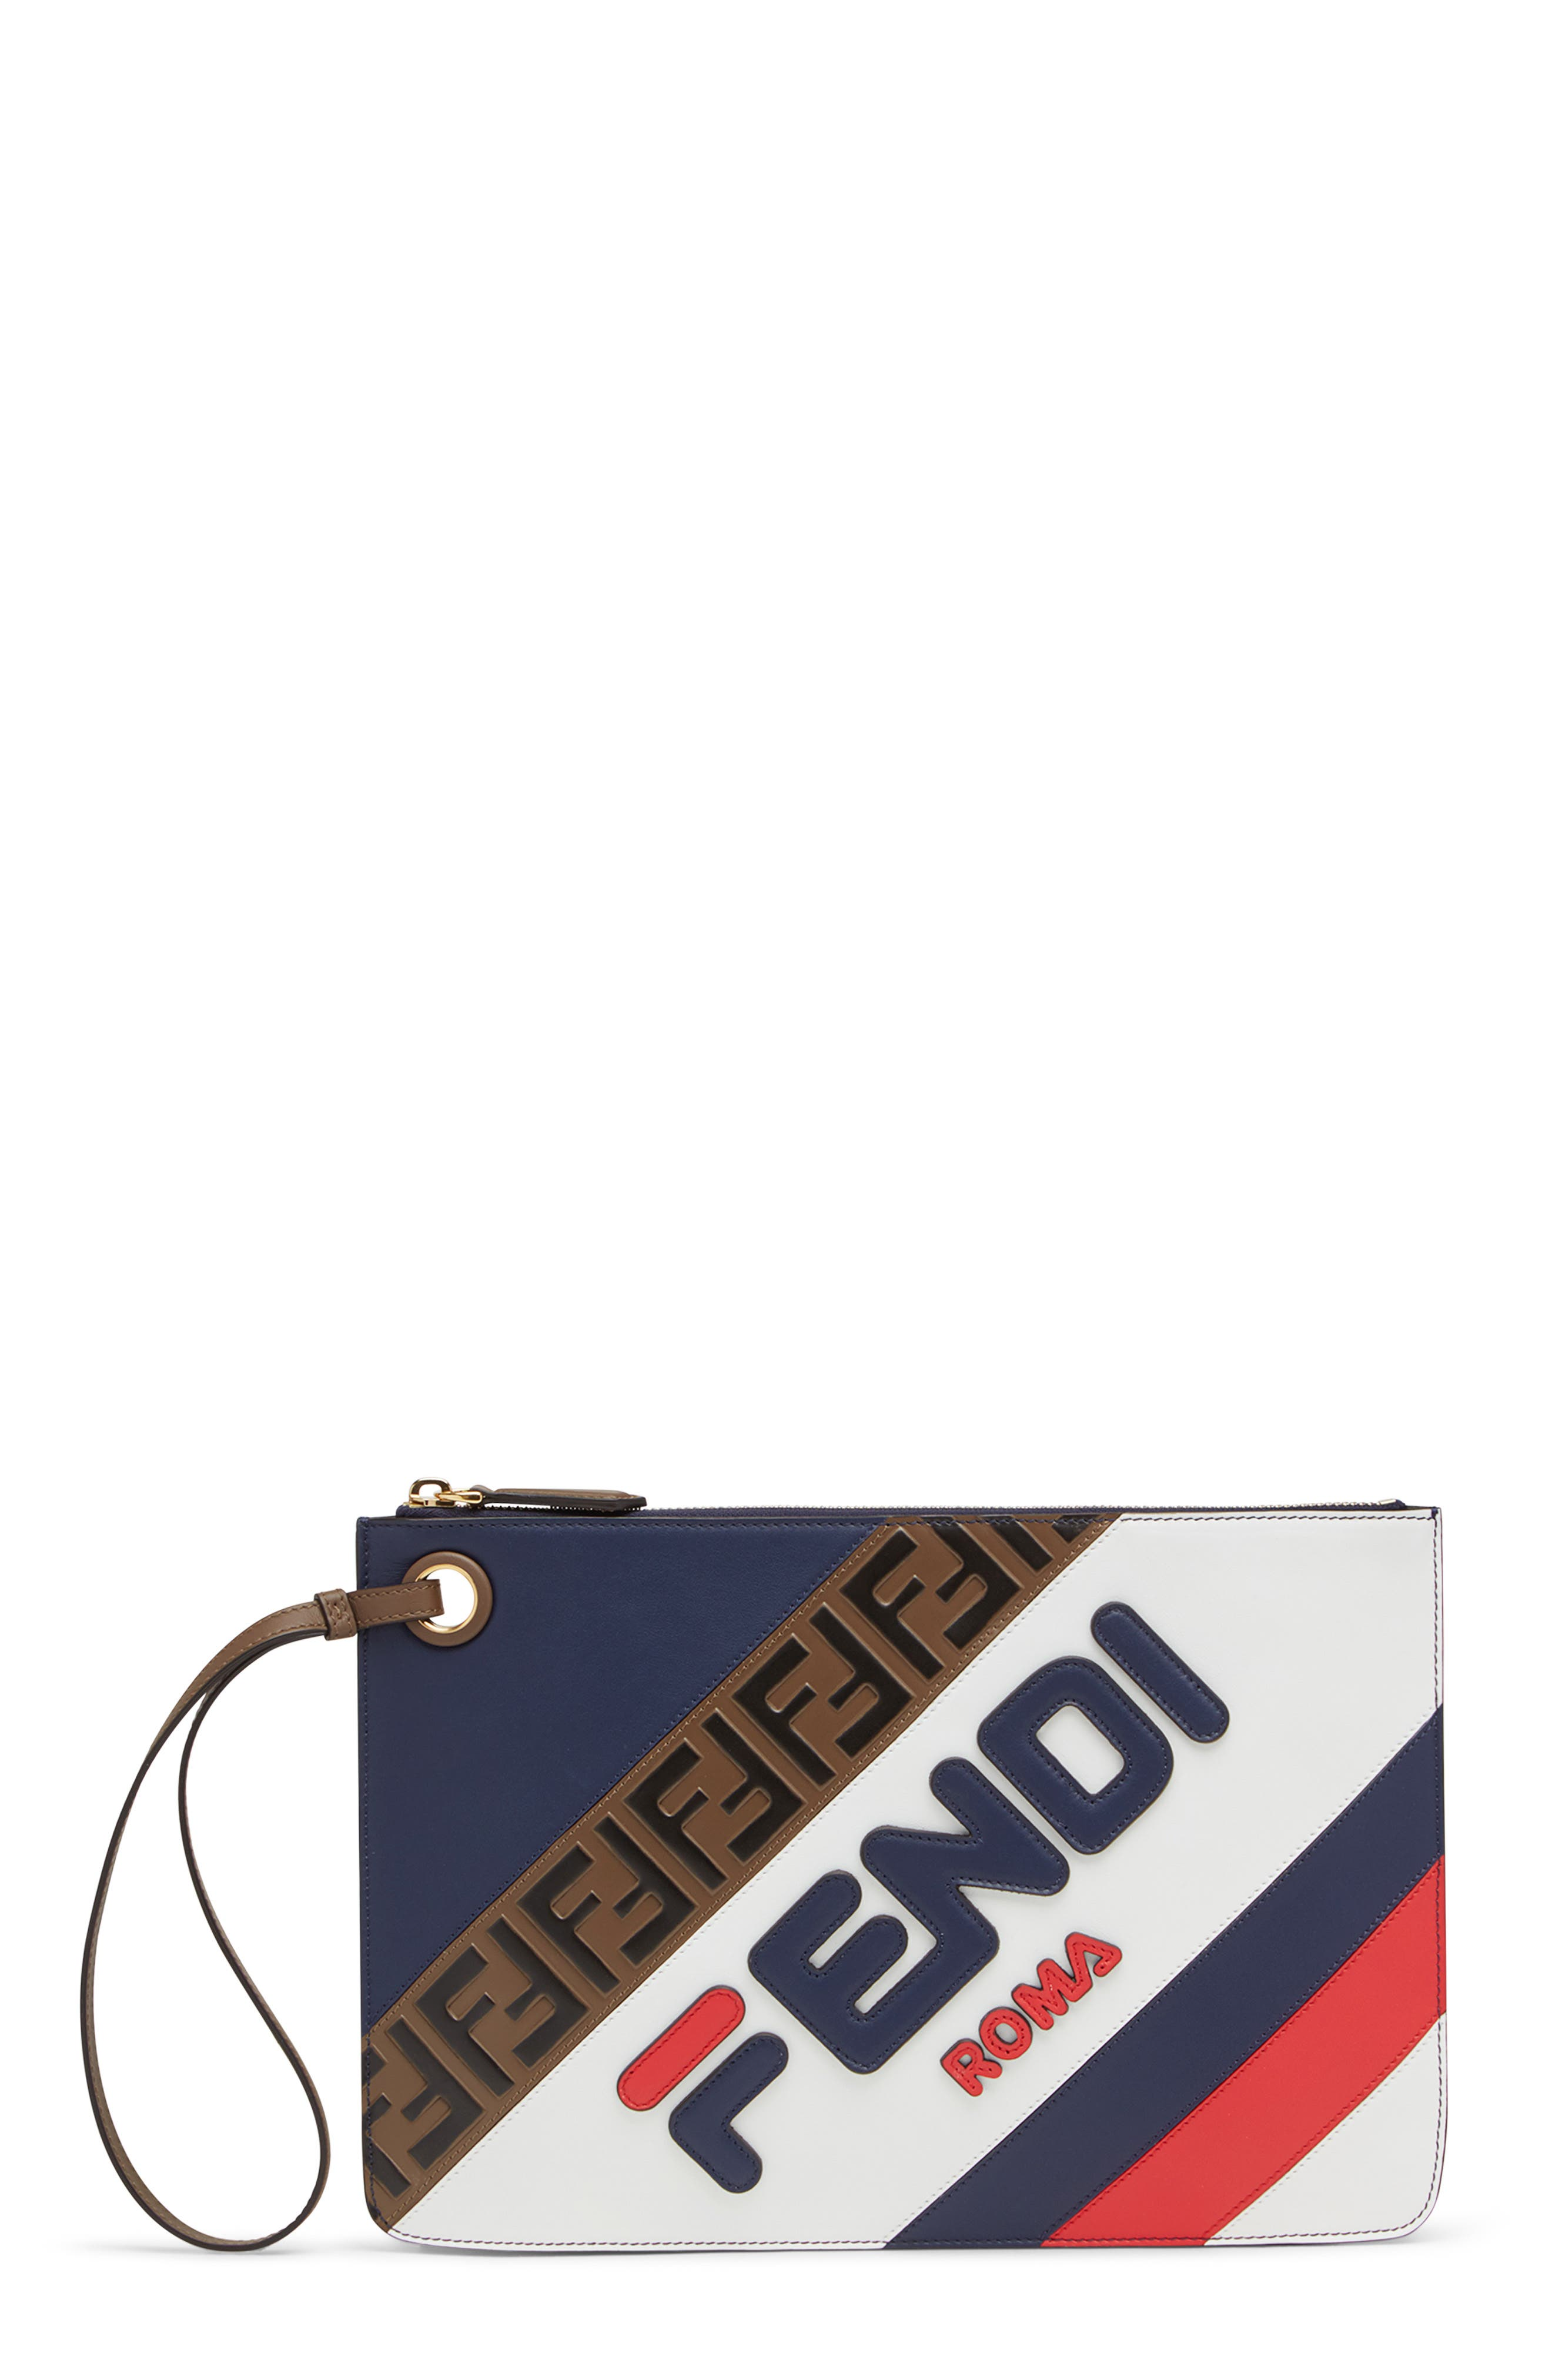 x FILA Medium Mania Logo Leather Clutch,                         Main,                         color, BLUE/ BERRY MULTI